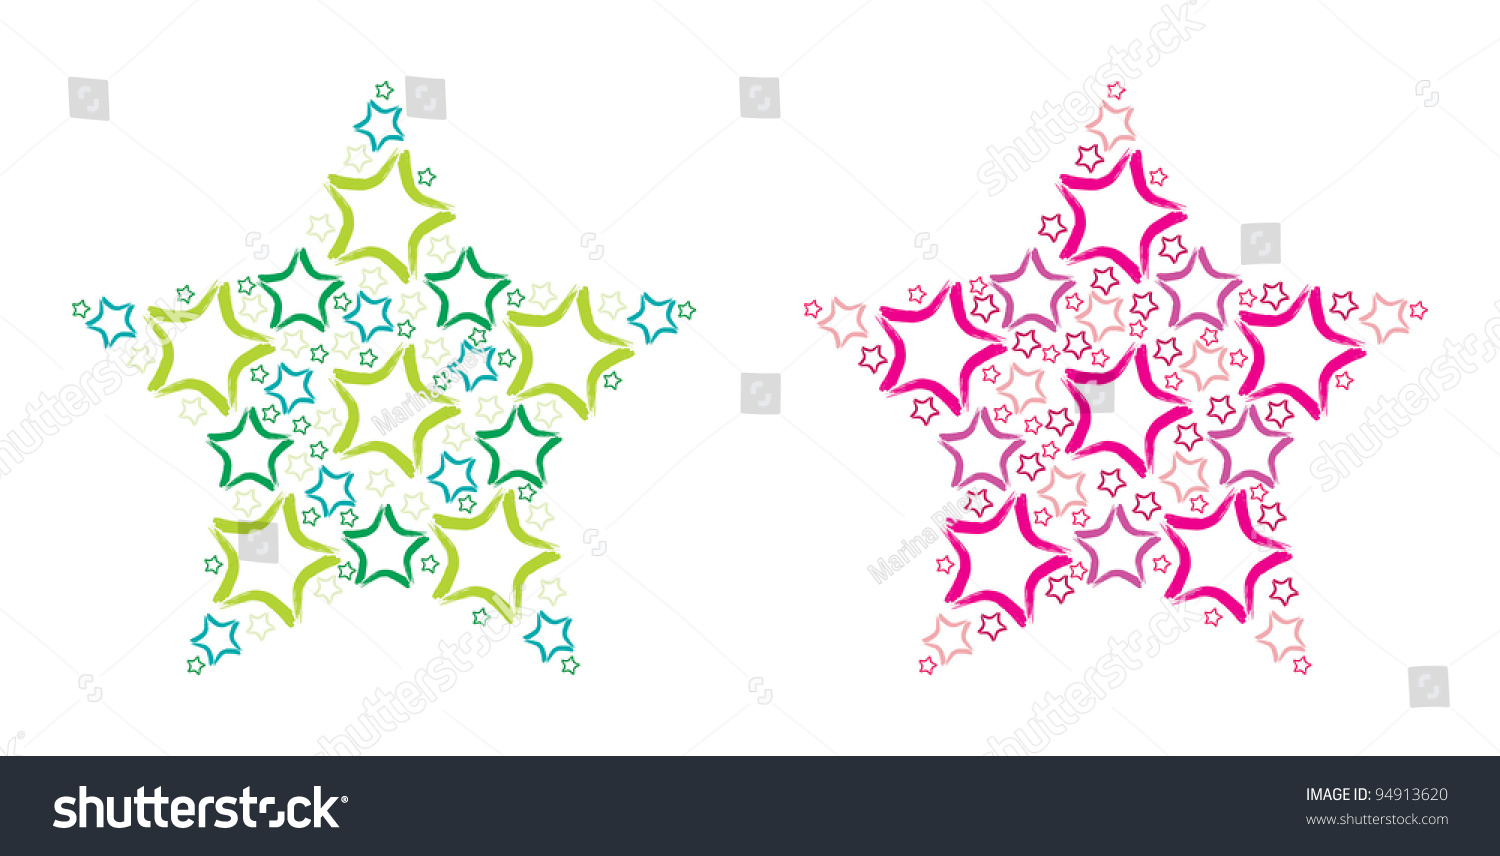 big star made small hand drawn stock vector shutterstock big star made of small hand drawn stars on a white background in vector format